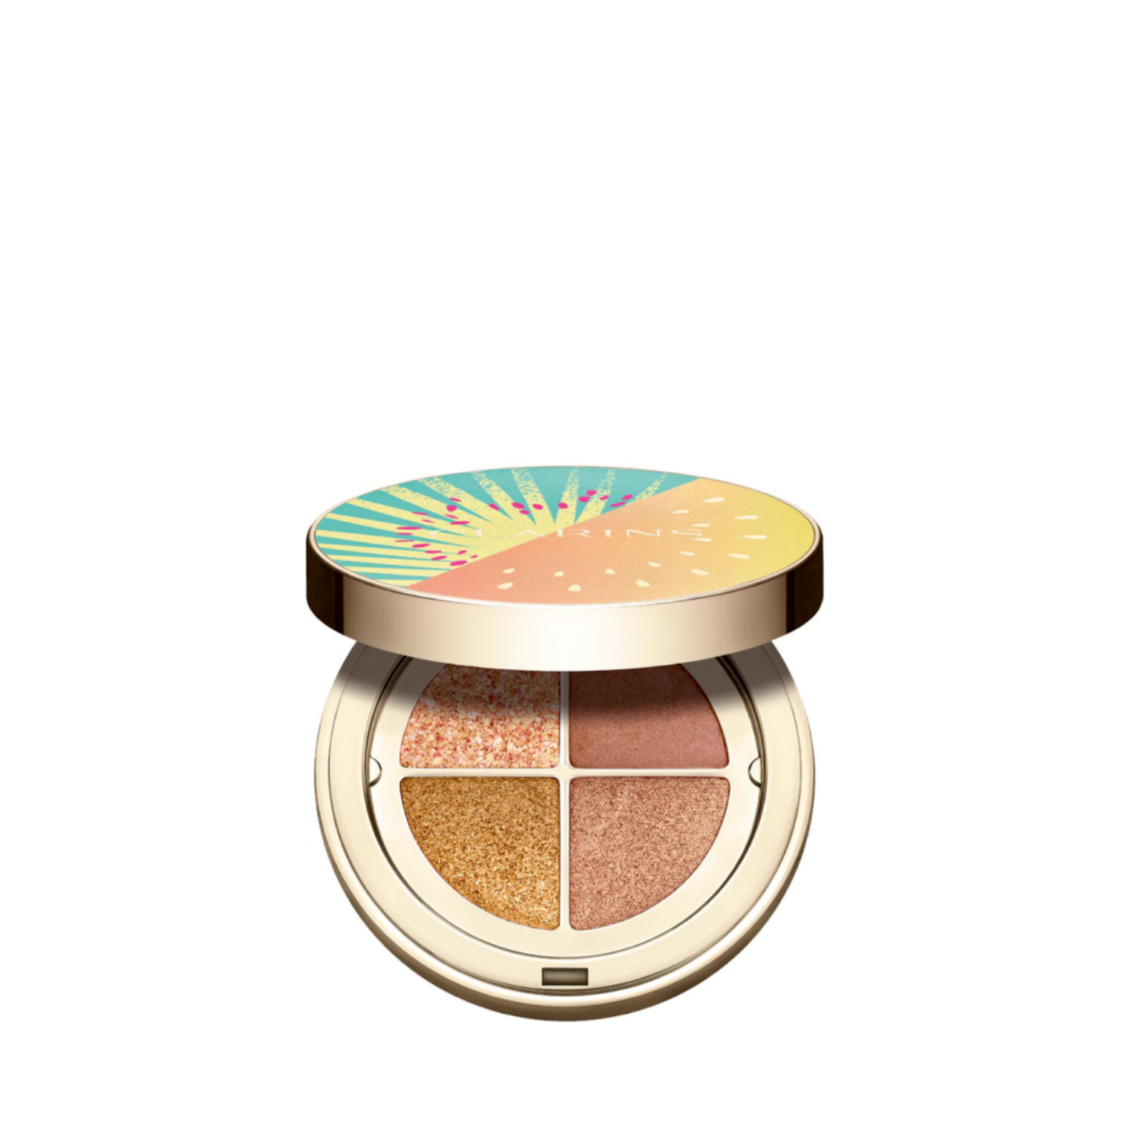 Clarins Summer Ombre 4-Colour Eyeshadow Palette